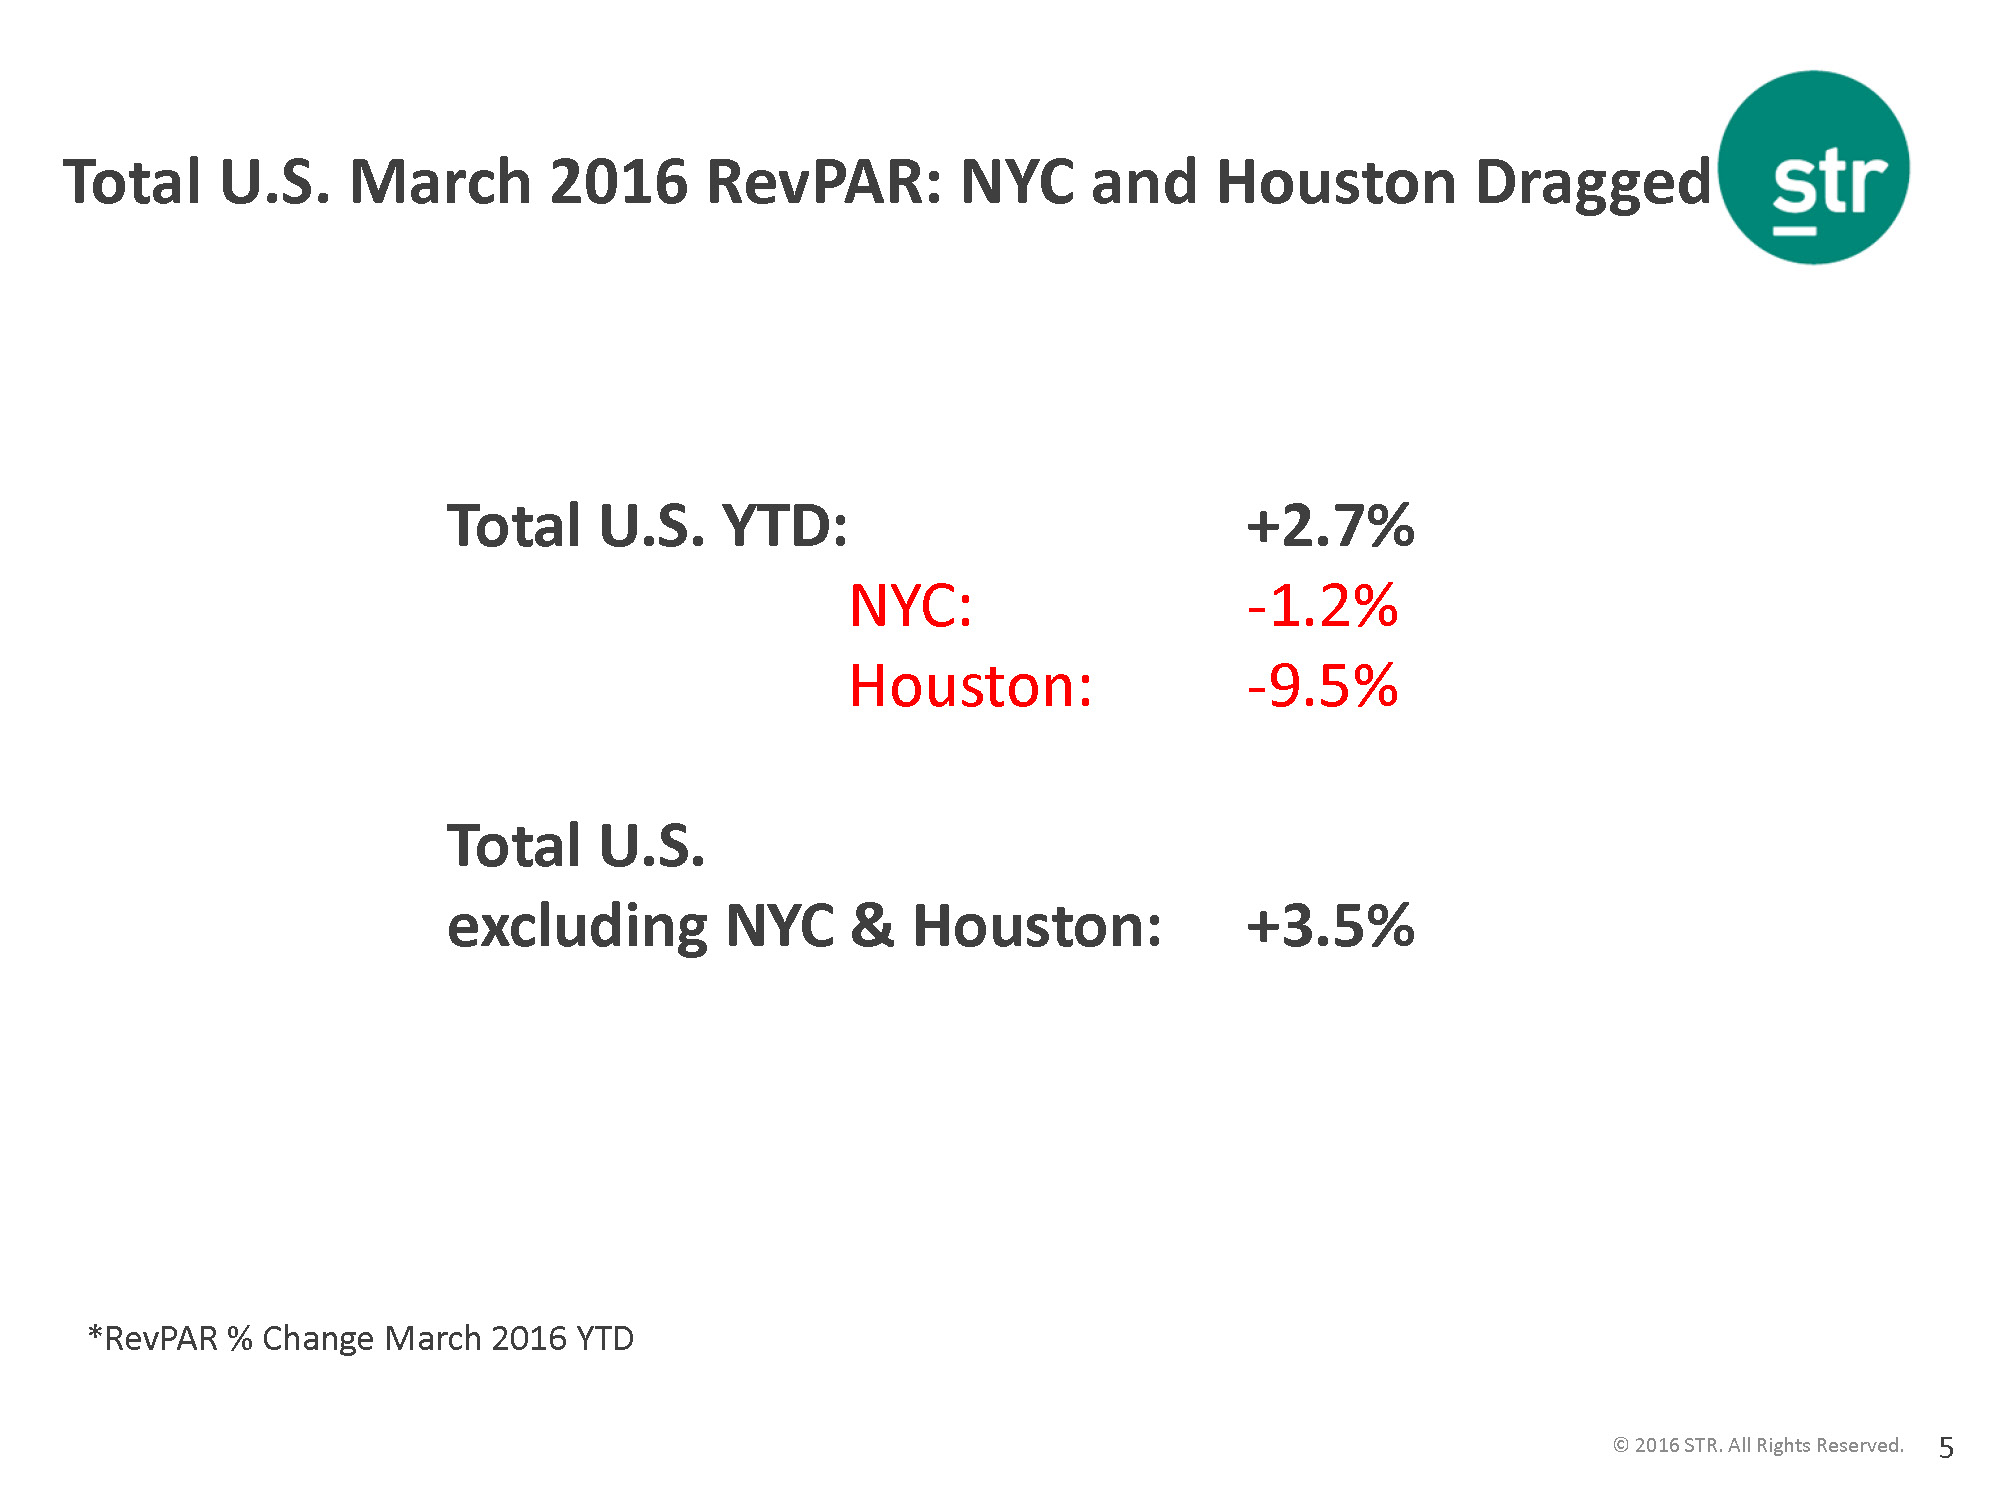 Industry fundamentals are good now and will continue improve here is what this slide tells us total us revpar growth in march 2016 was 27 but nyc had negative revpar growth of 12 and houston had 95 sciox Image collections